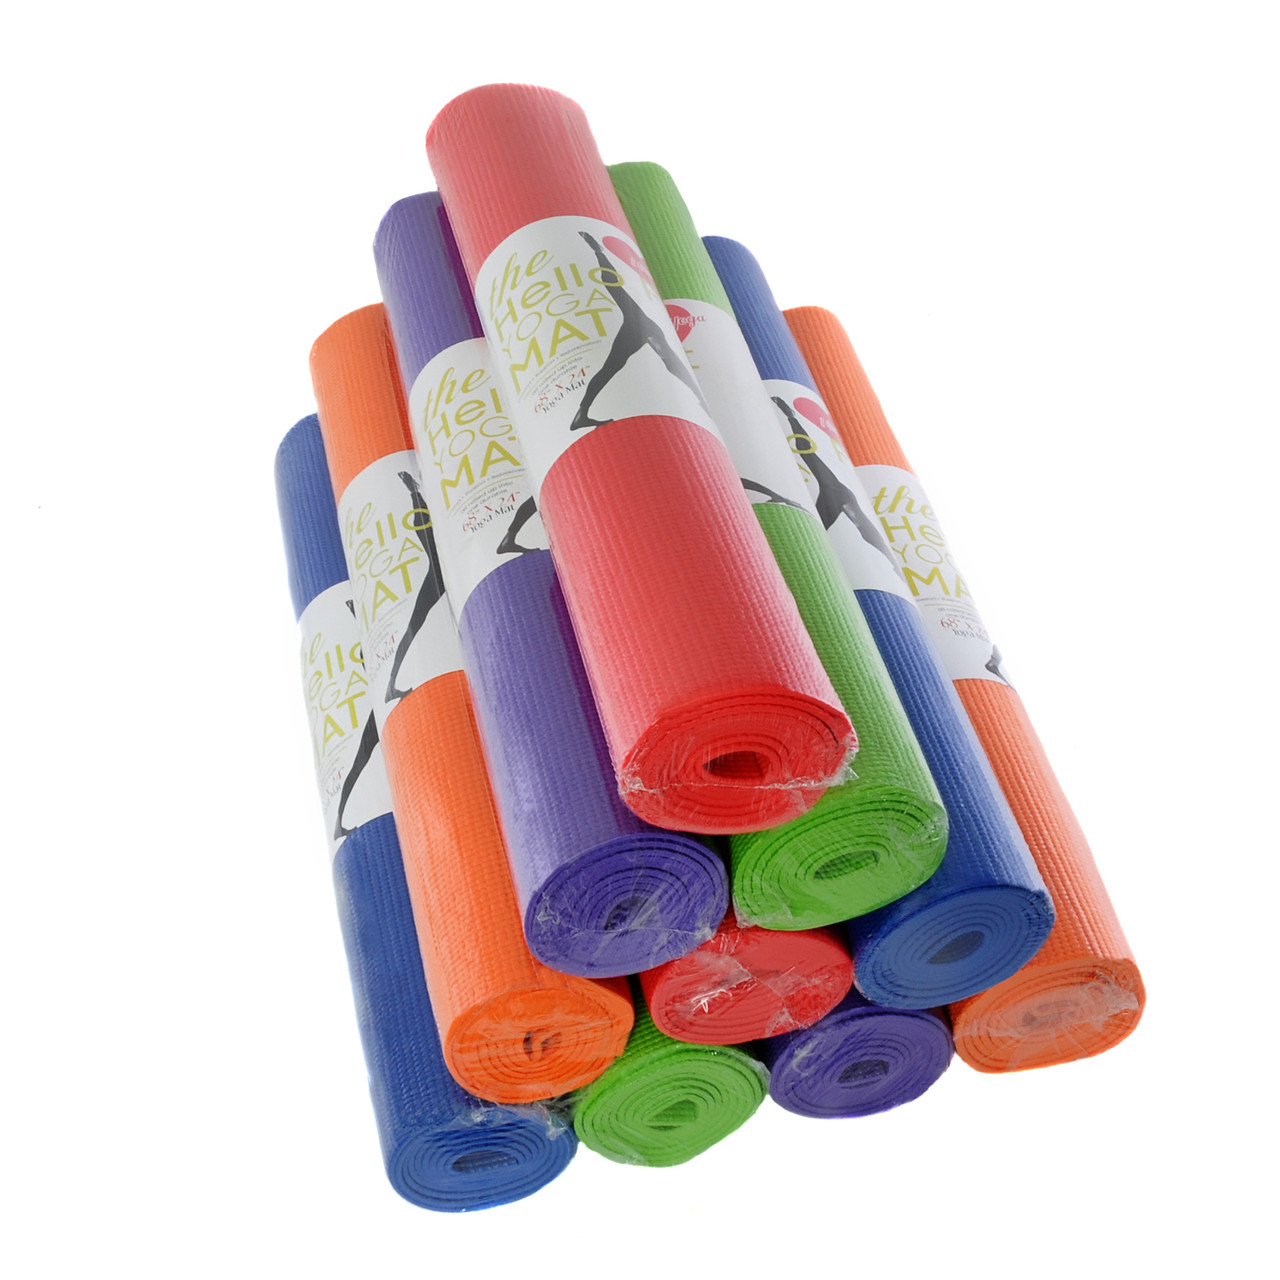 Yoga Mat Hello Fit Economy 10 Pack 68 X 24 X 1 8 Free Shipping